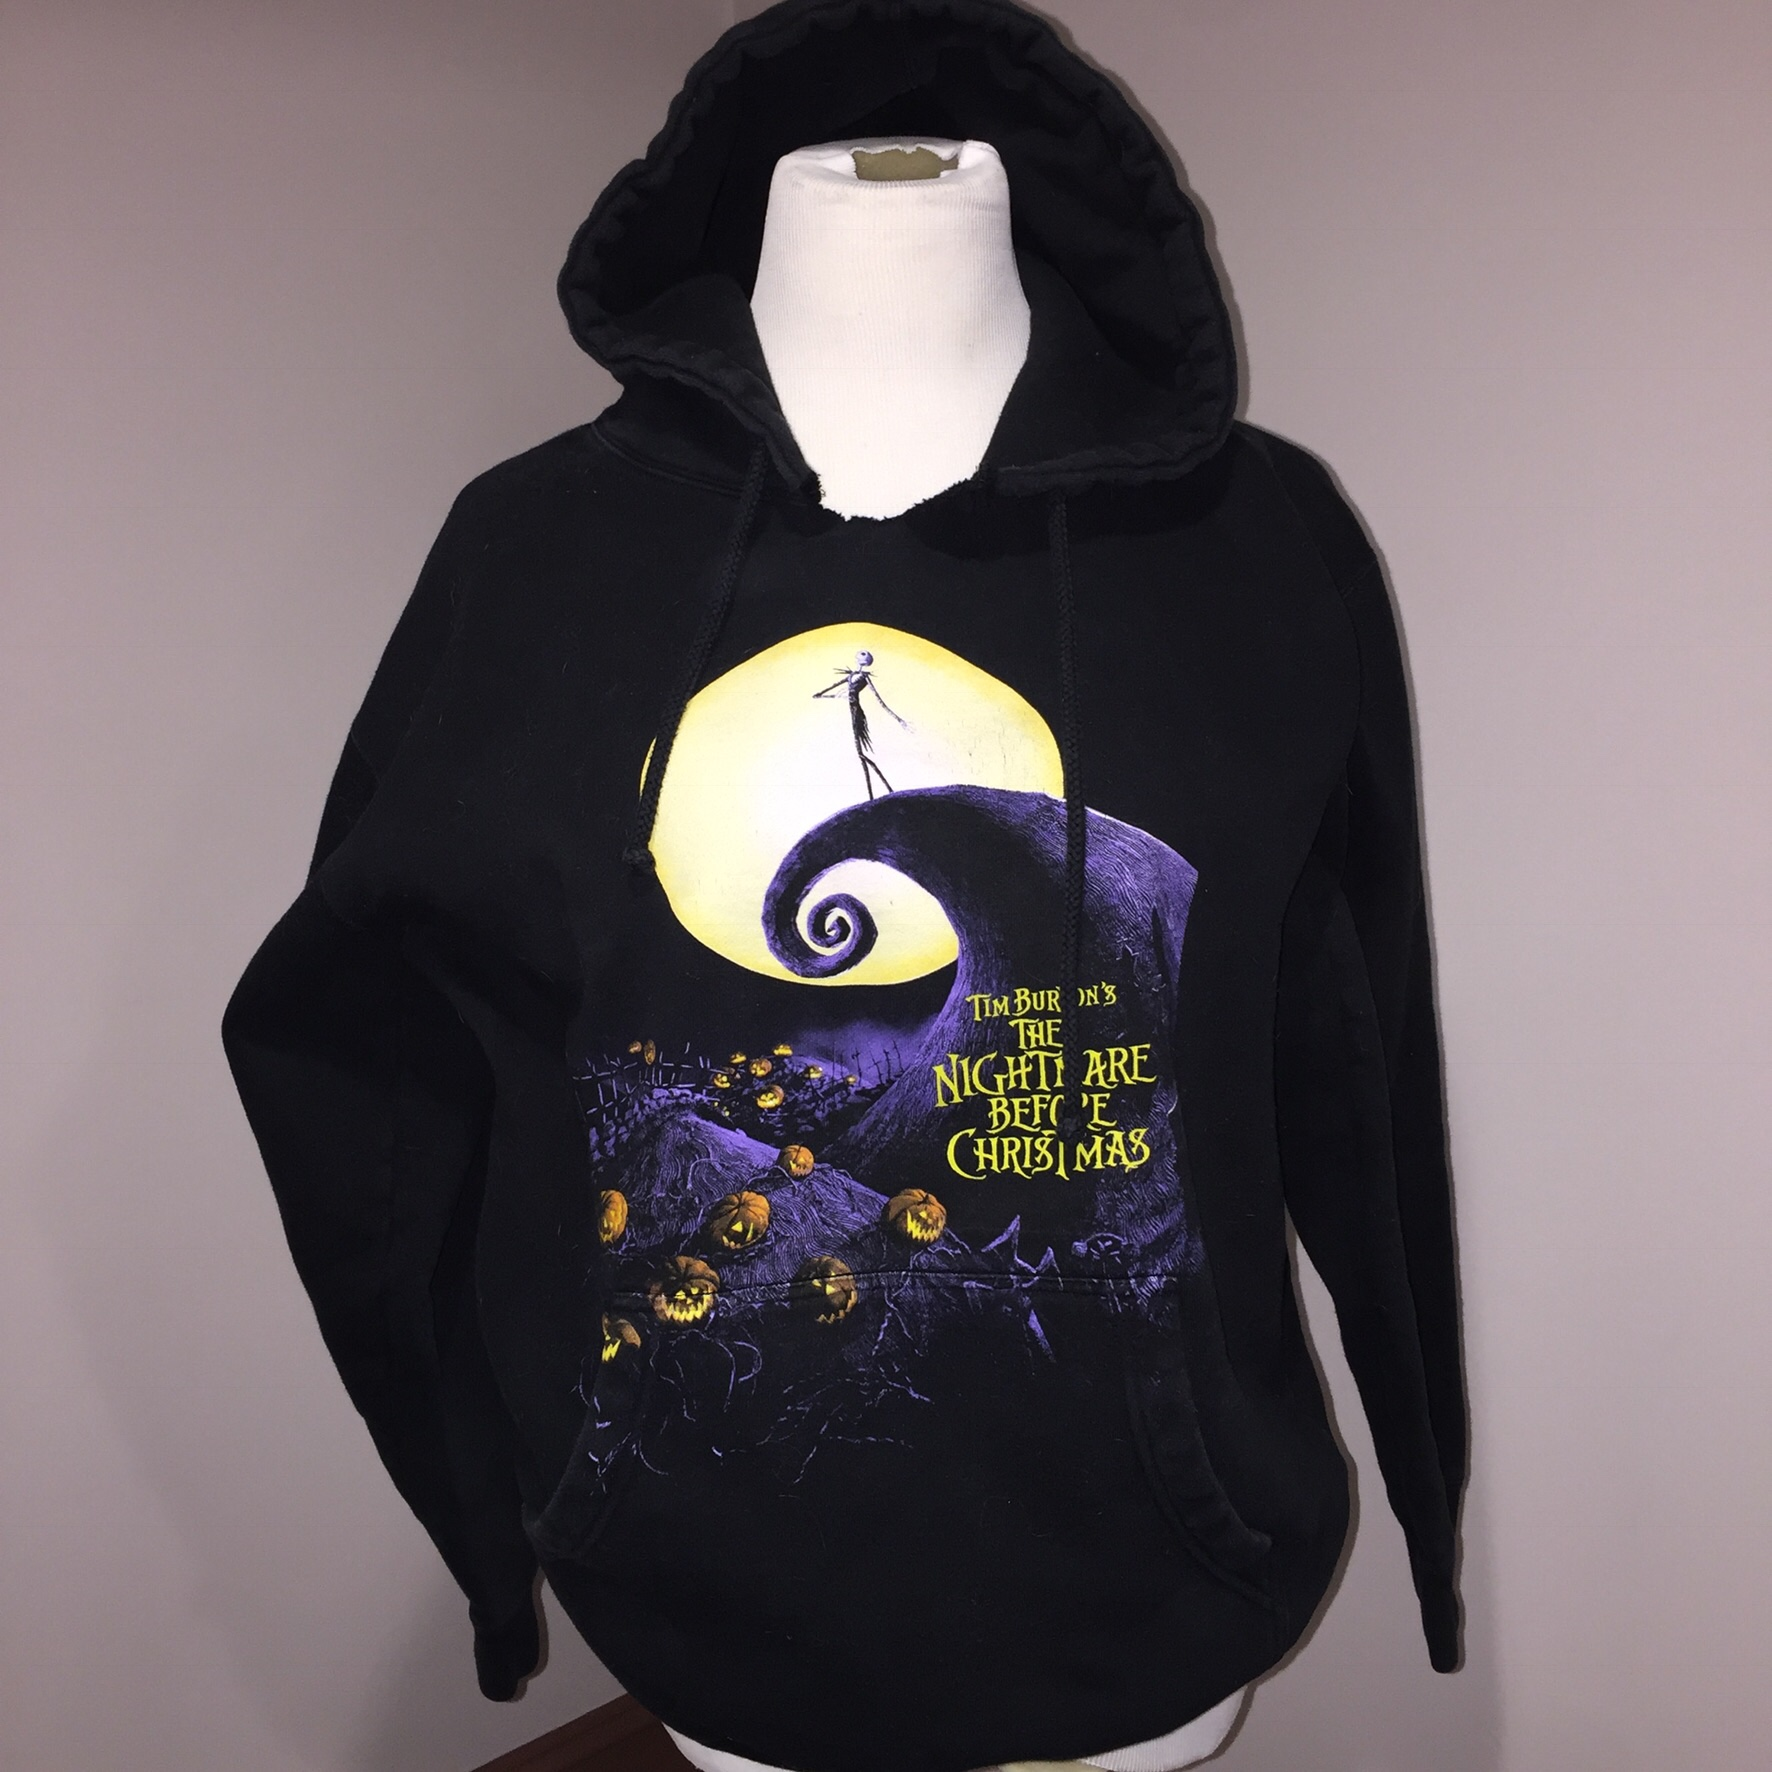 Hot Topic Nightmare Before Christmas Sweater.Black Nightmare Before Christmas Hoodie With Jack Depop